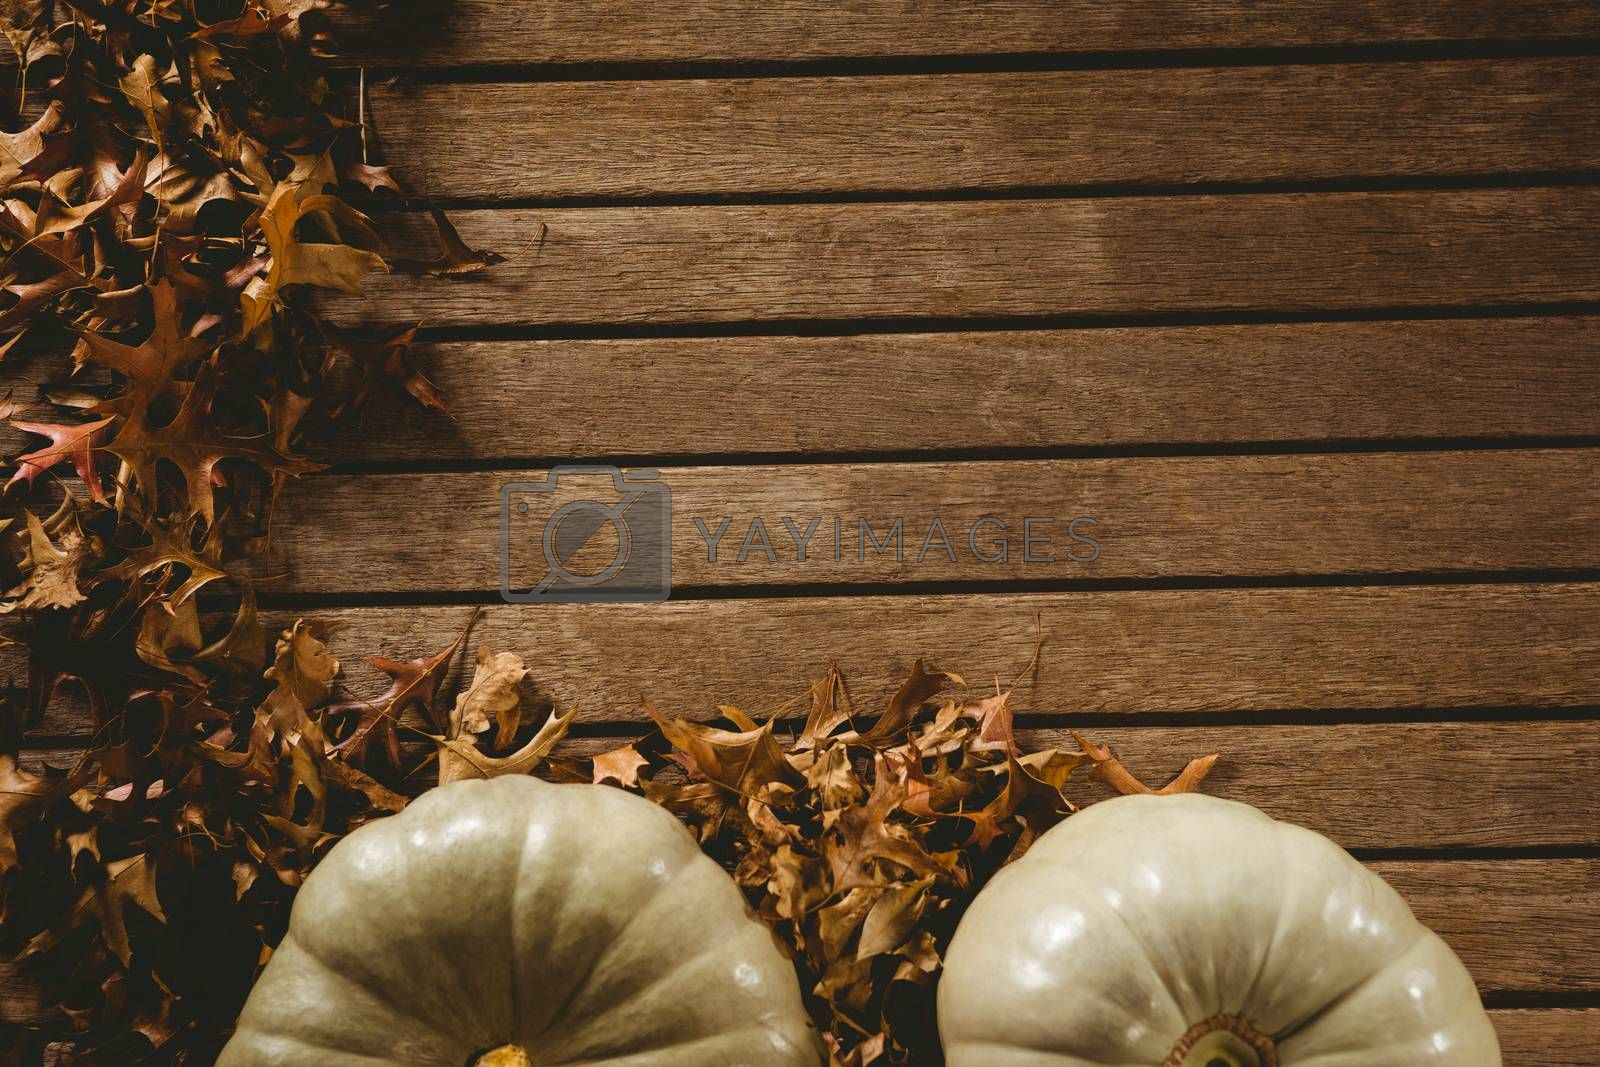 Overhead view of autumn leaves by pumpkins on table during Halloween